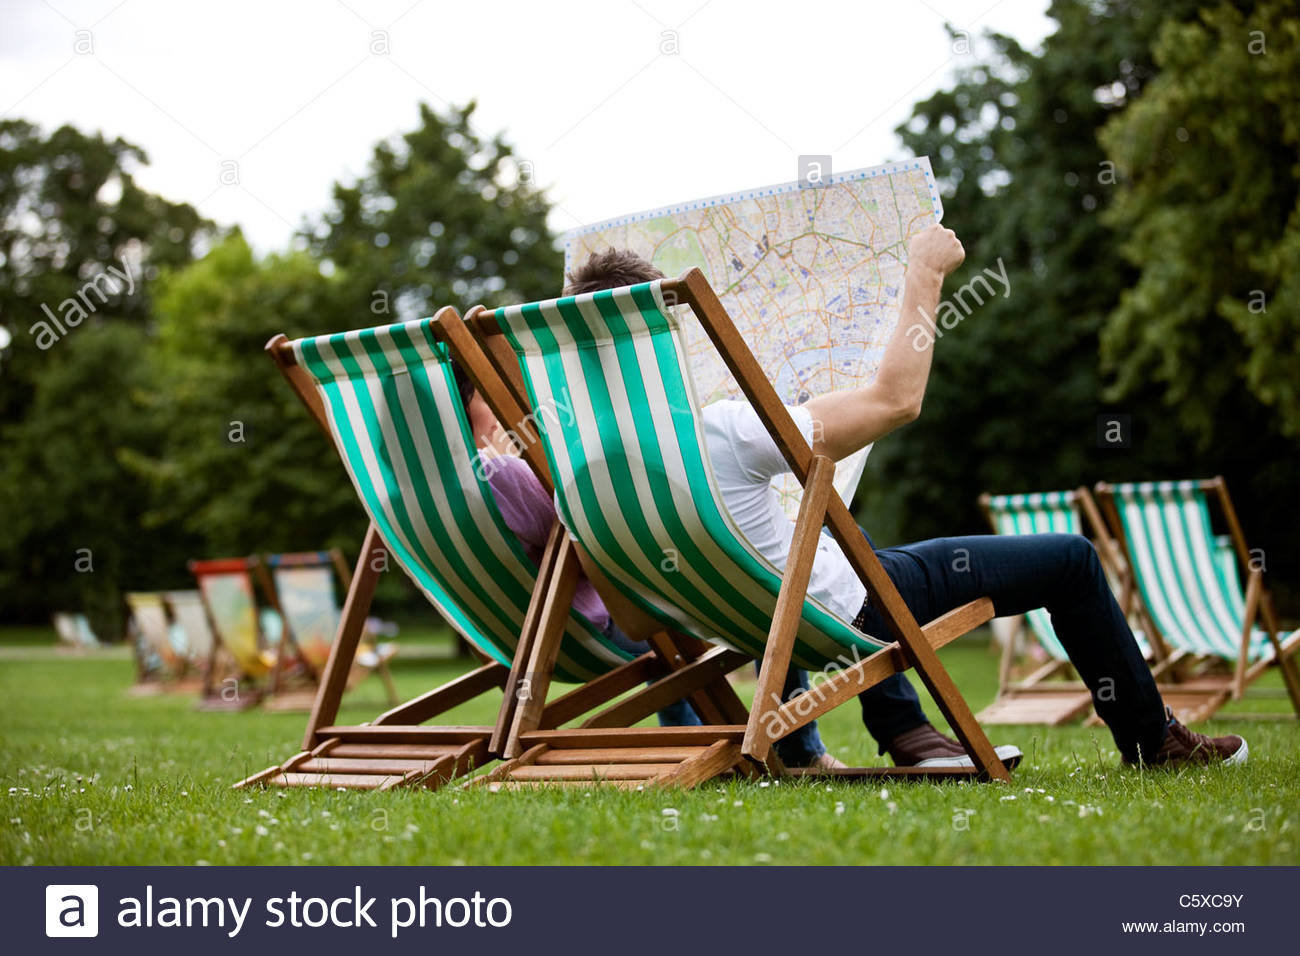 A young couple sitting on deck chairs in St James Park, looking at a map - Stock Image